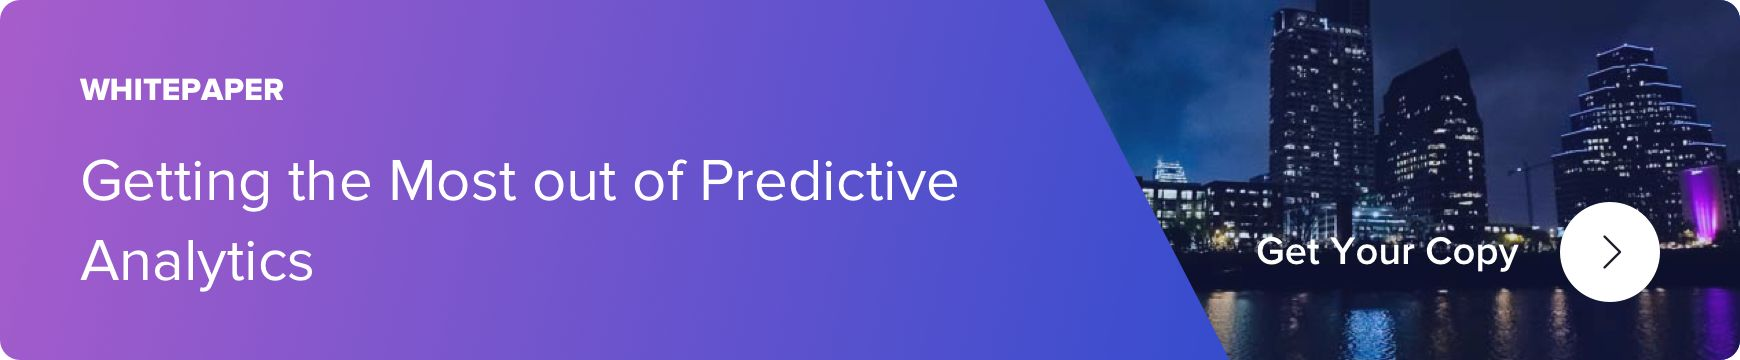 getting most predictive analytics technology